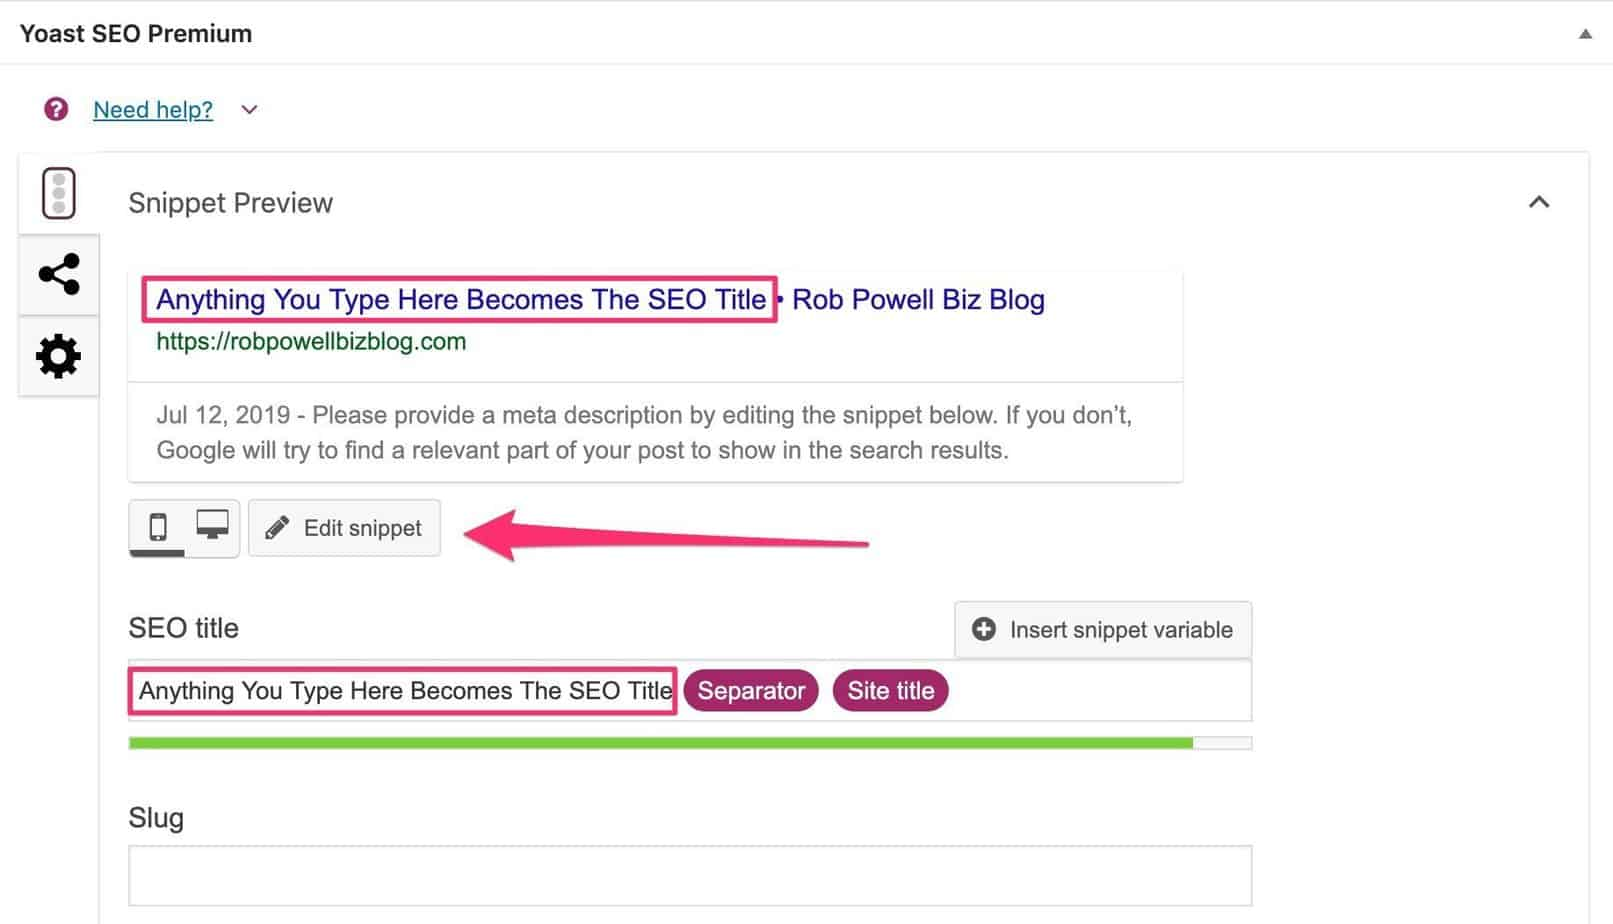 modifying the SEO title in Yoast